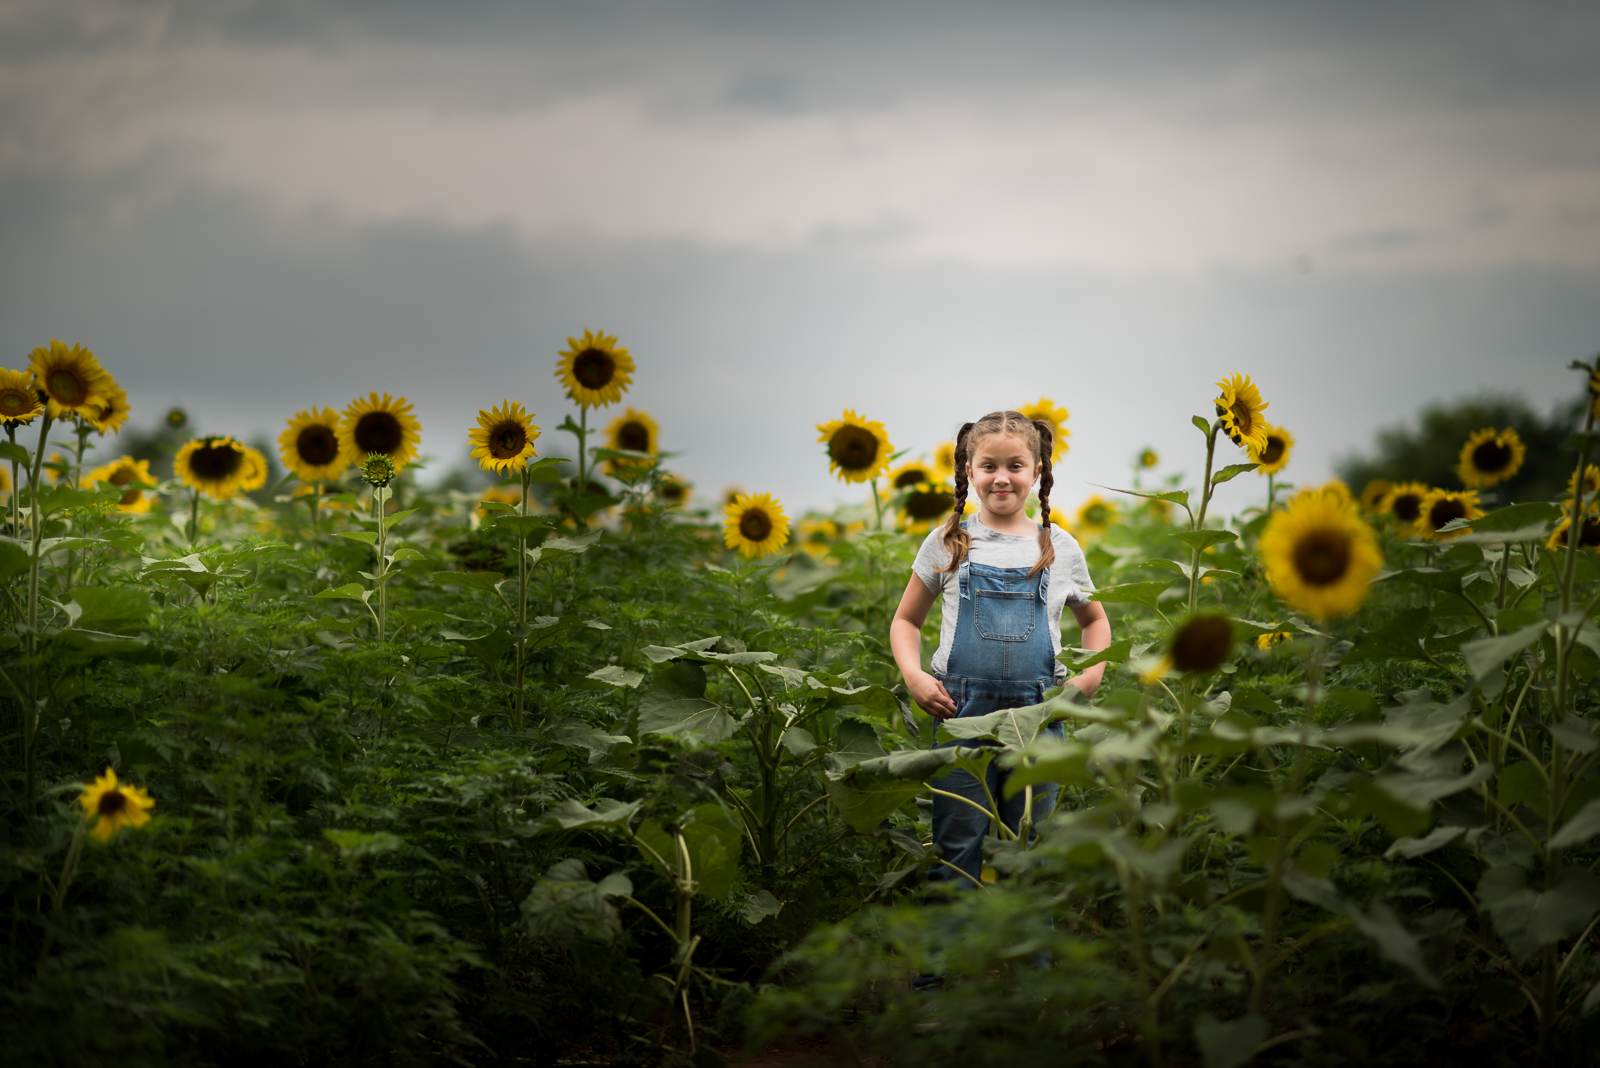 sunflowers-3482.jpg